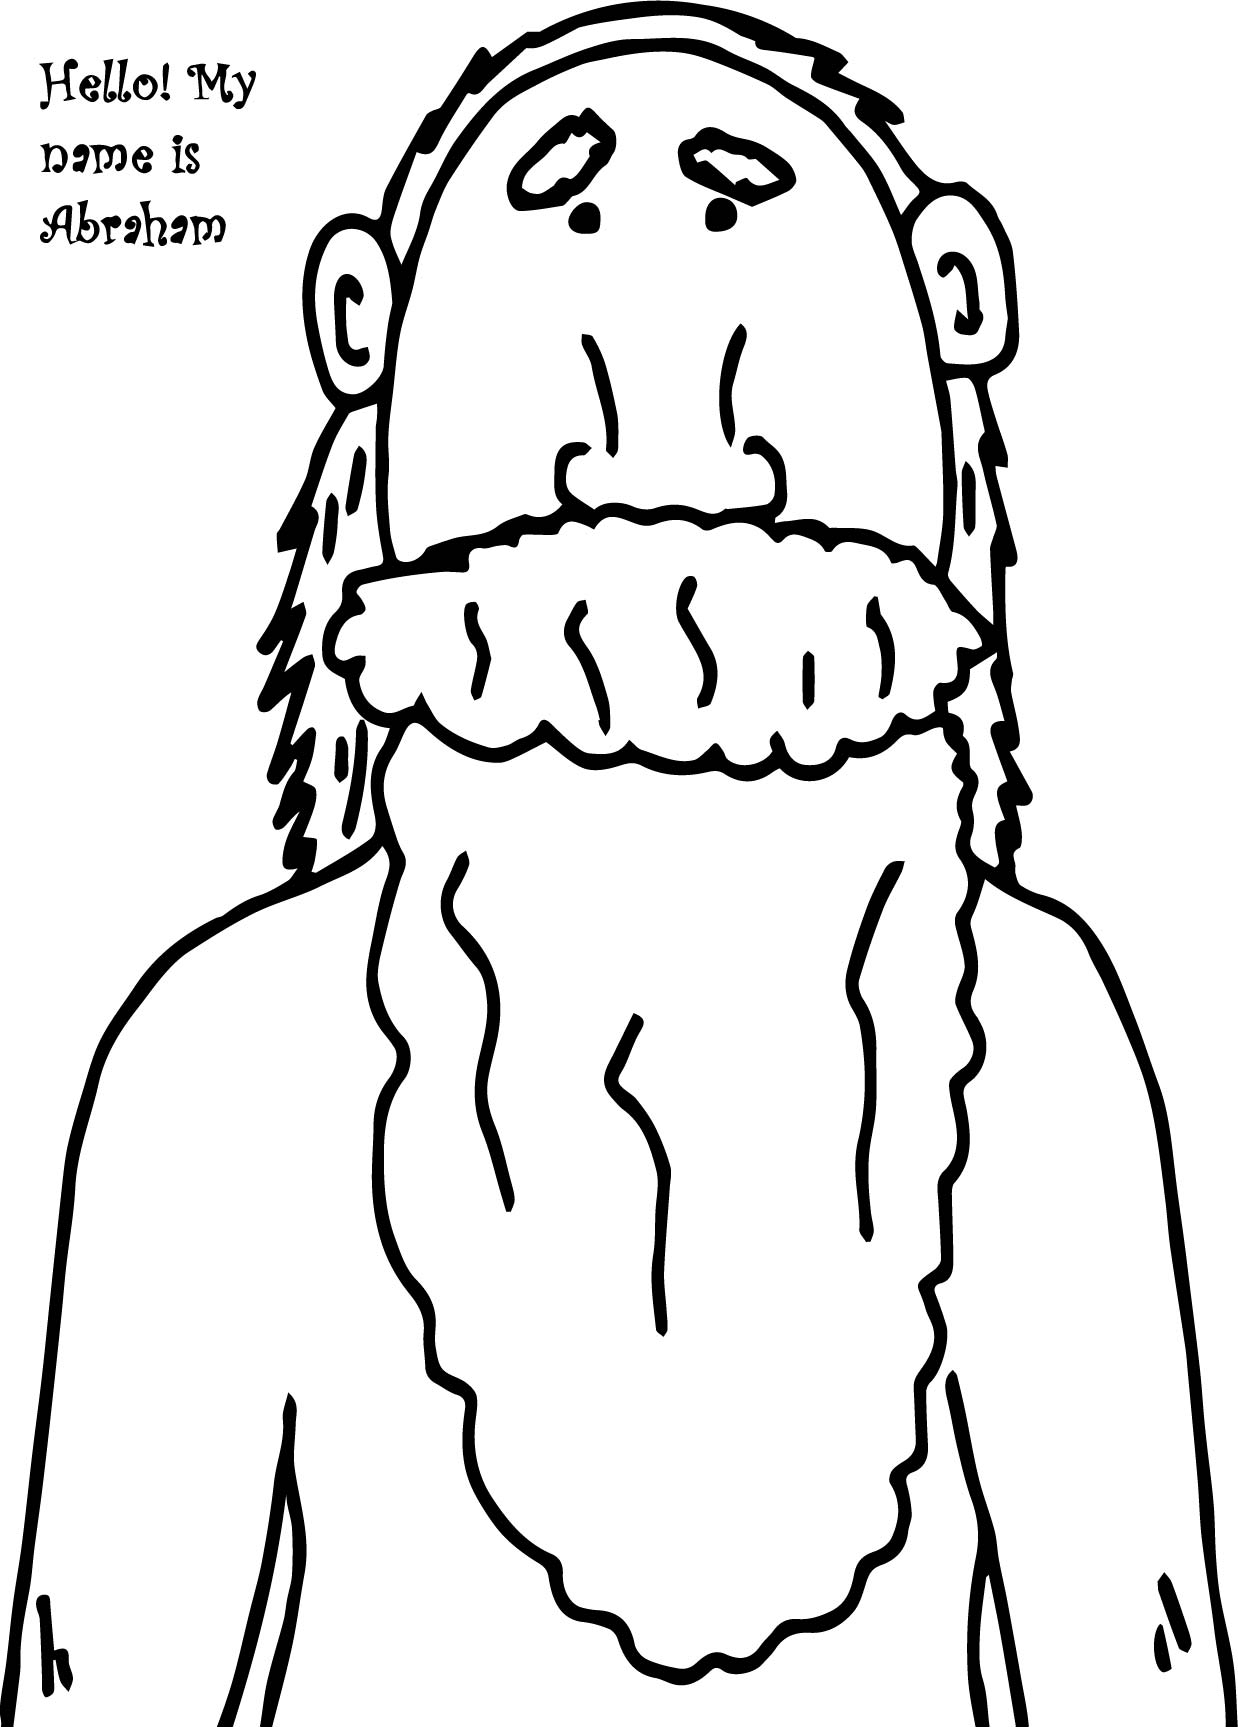 abraham and sarah coloring pages - hello name abraham sarah coloring page